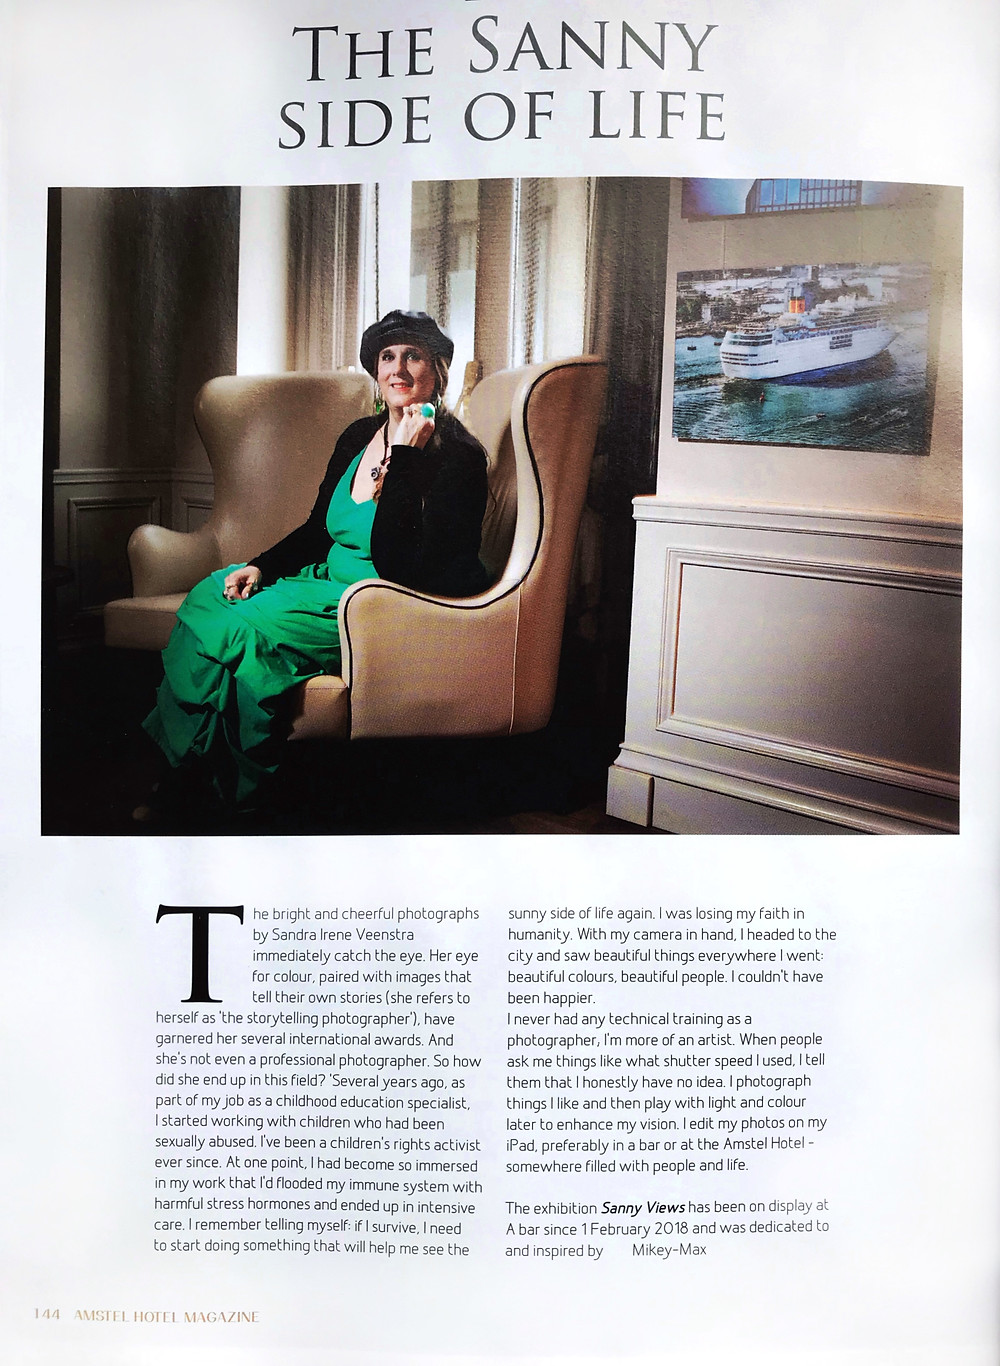 Interview in Amstel Hotel Magazine 2018/2019